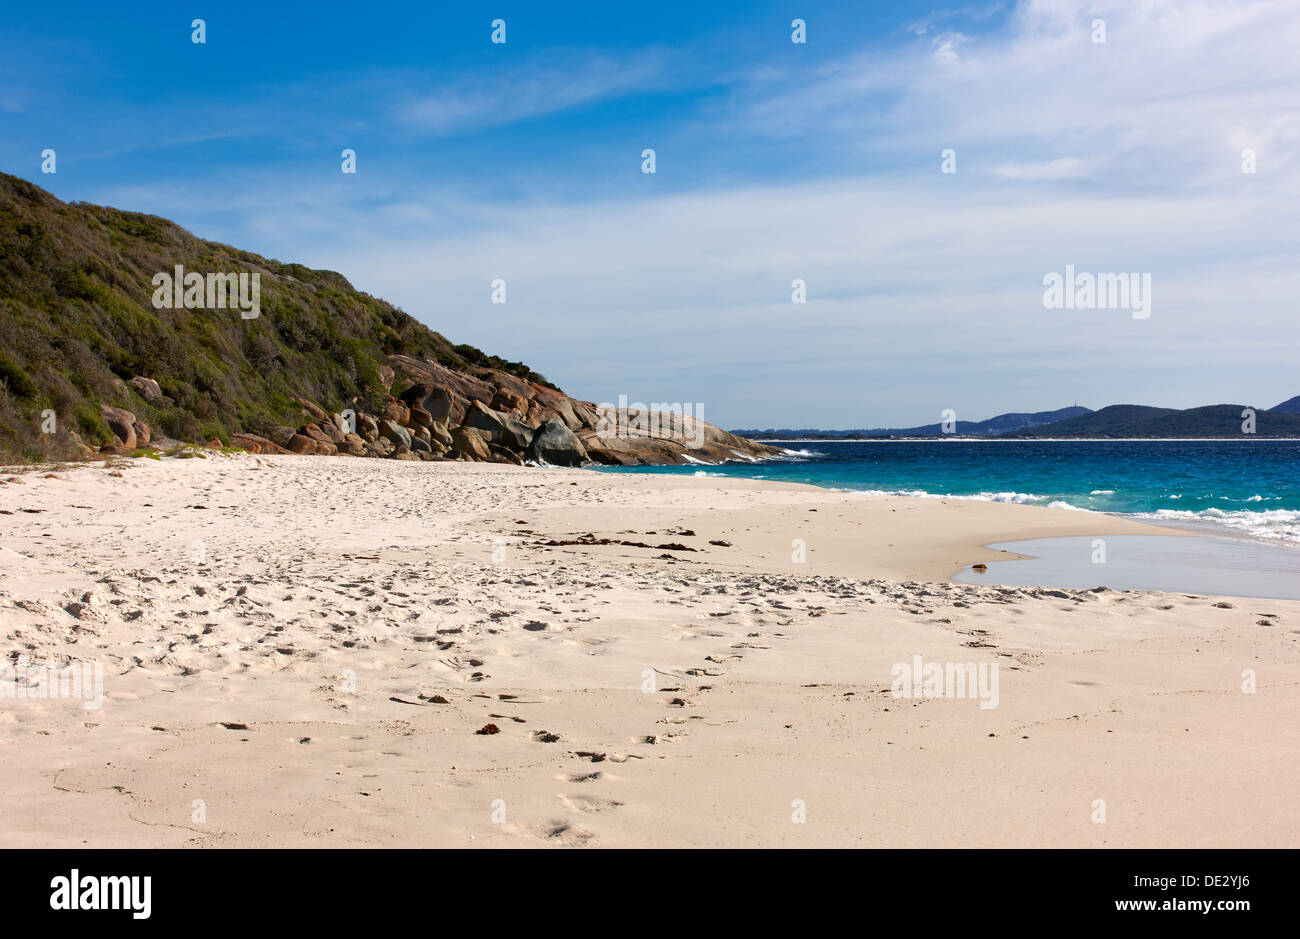 Misery Beach, Torndirrup National Park, Albany, Western Australia - Stock Image